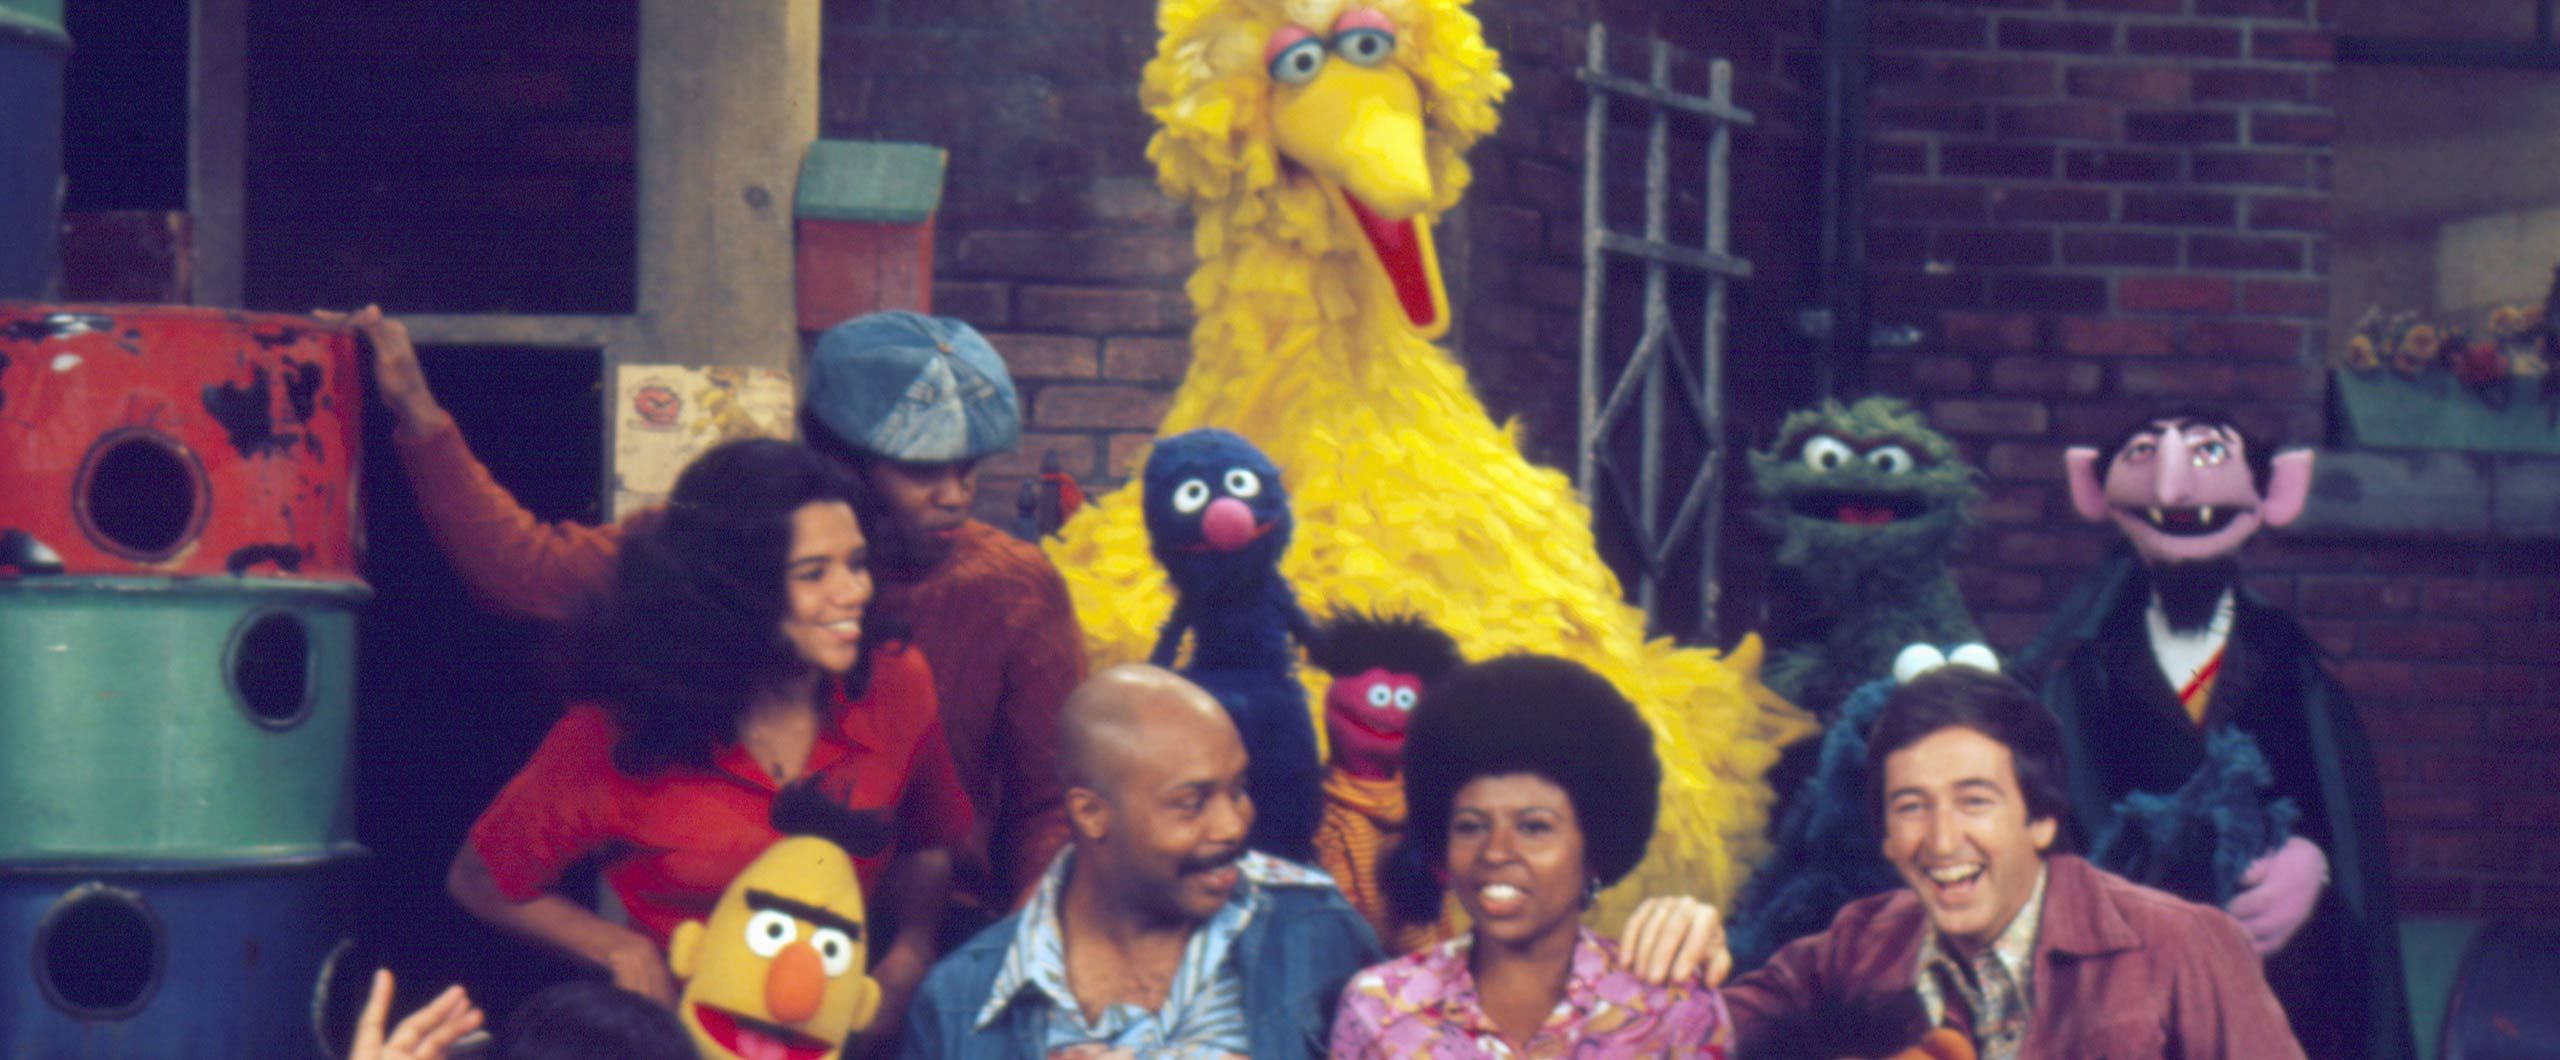 Fifty Years of 'Sesame Street' Sesame street, Cultural